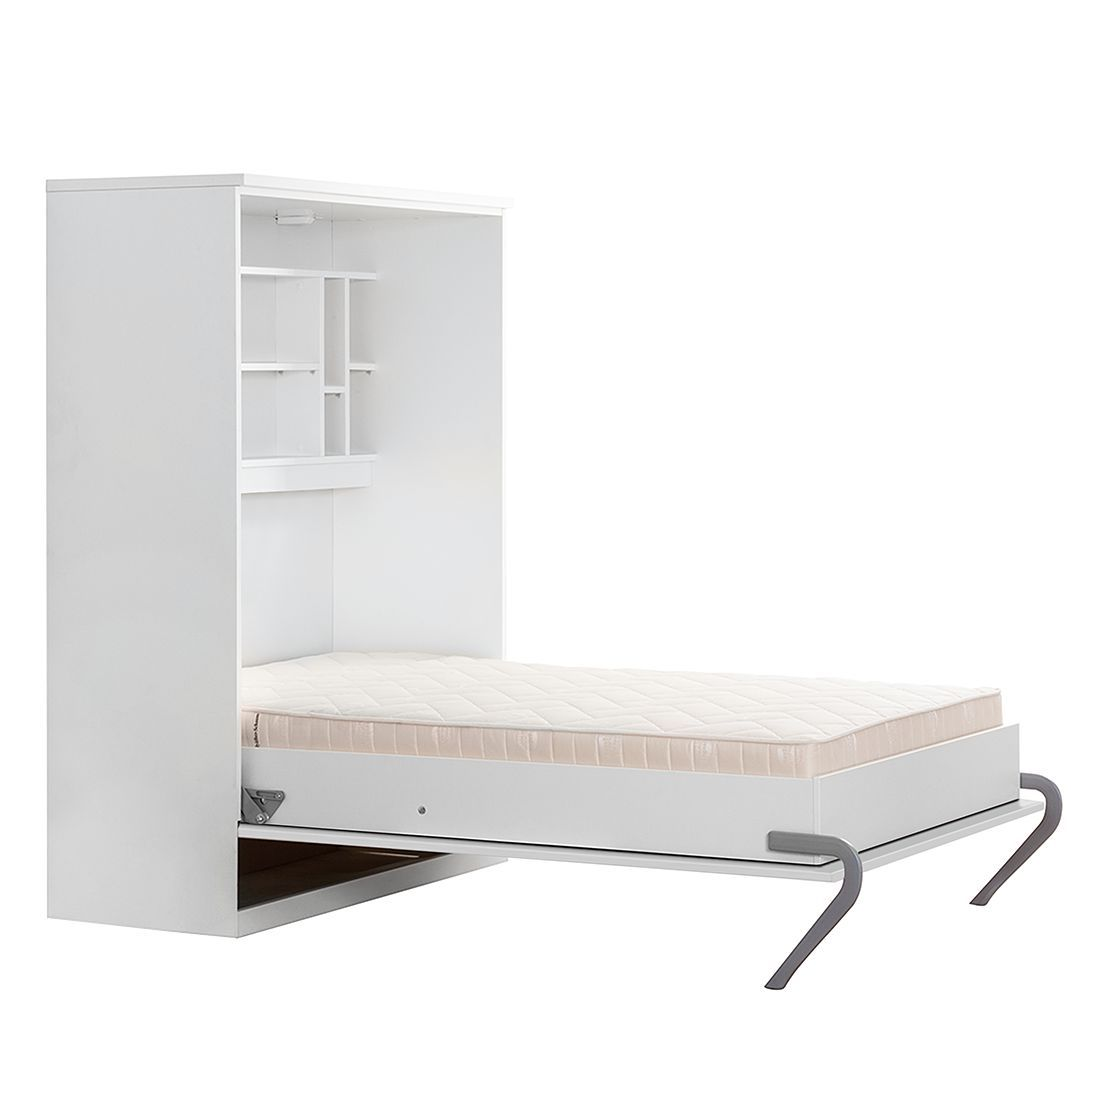 Schrankbett 90 X 190 Pin By Ladendirekt On Betten Bed Furniture Bed Frame Bed